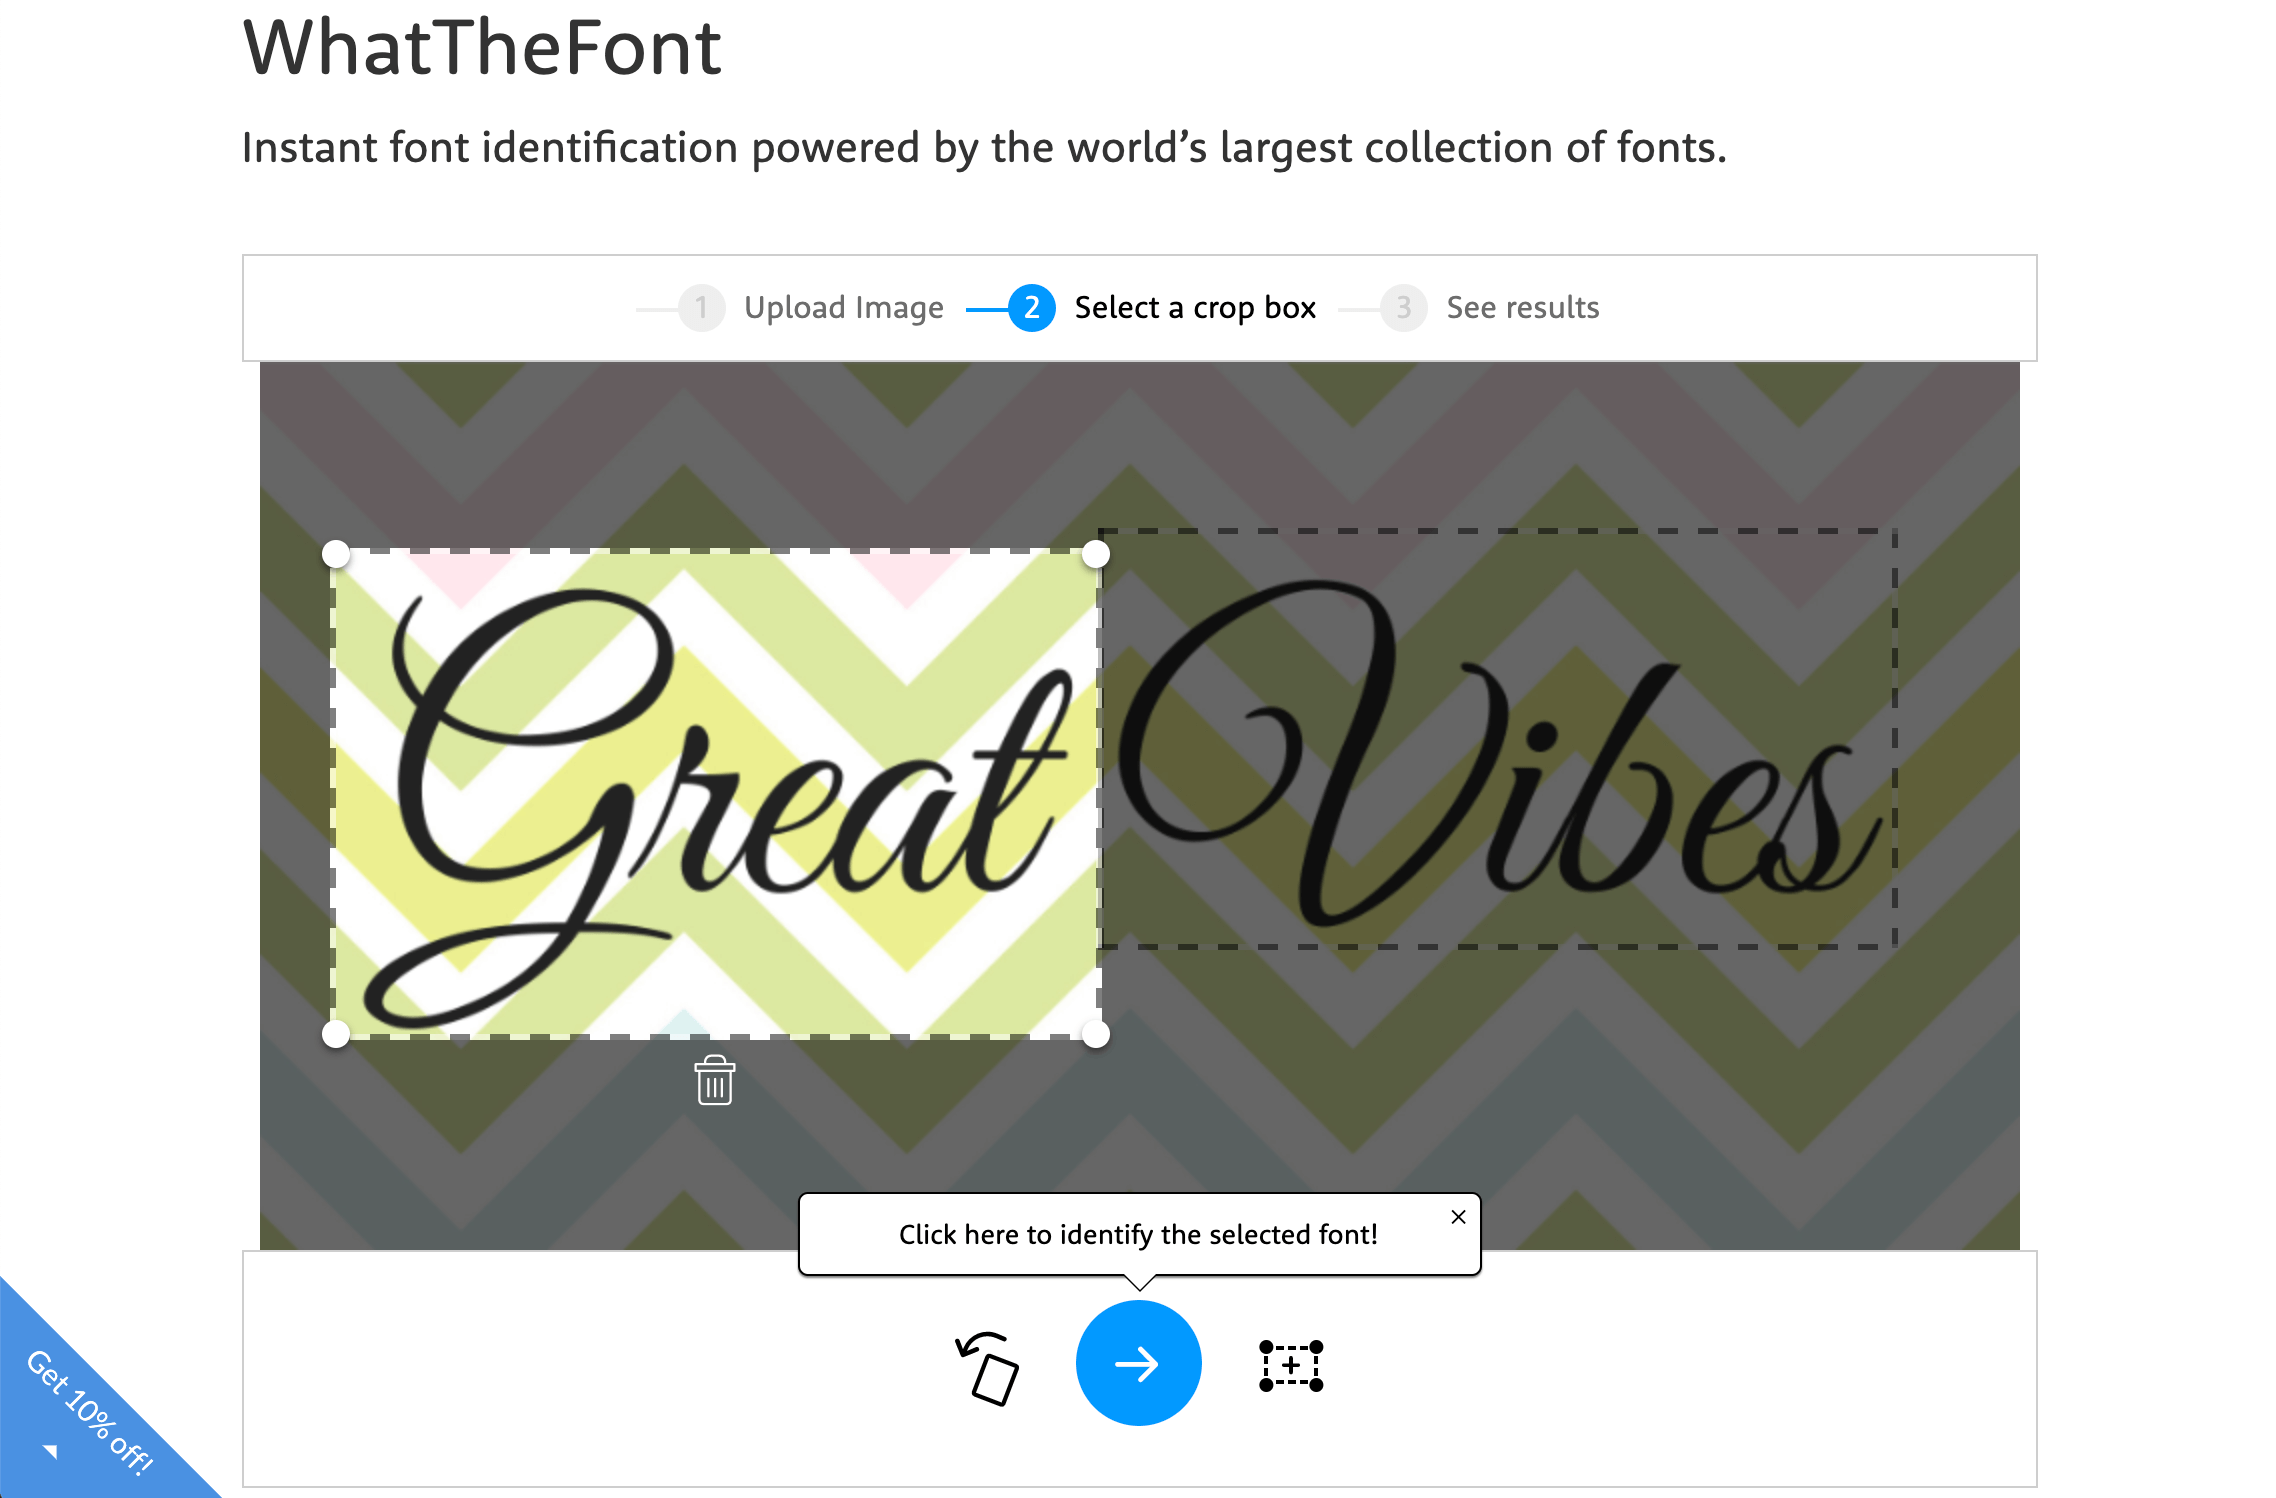 Selecting text from an image in WhatTheFont.